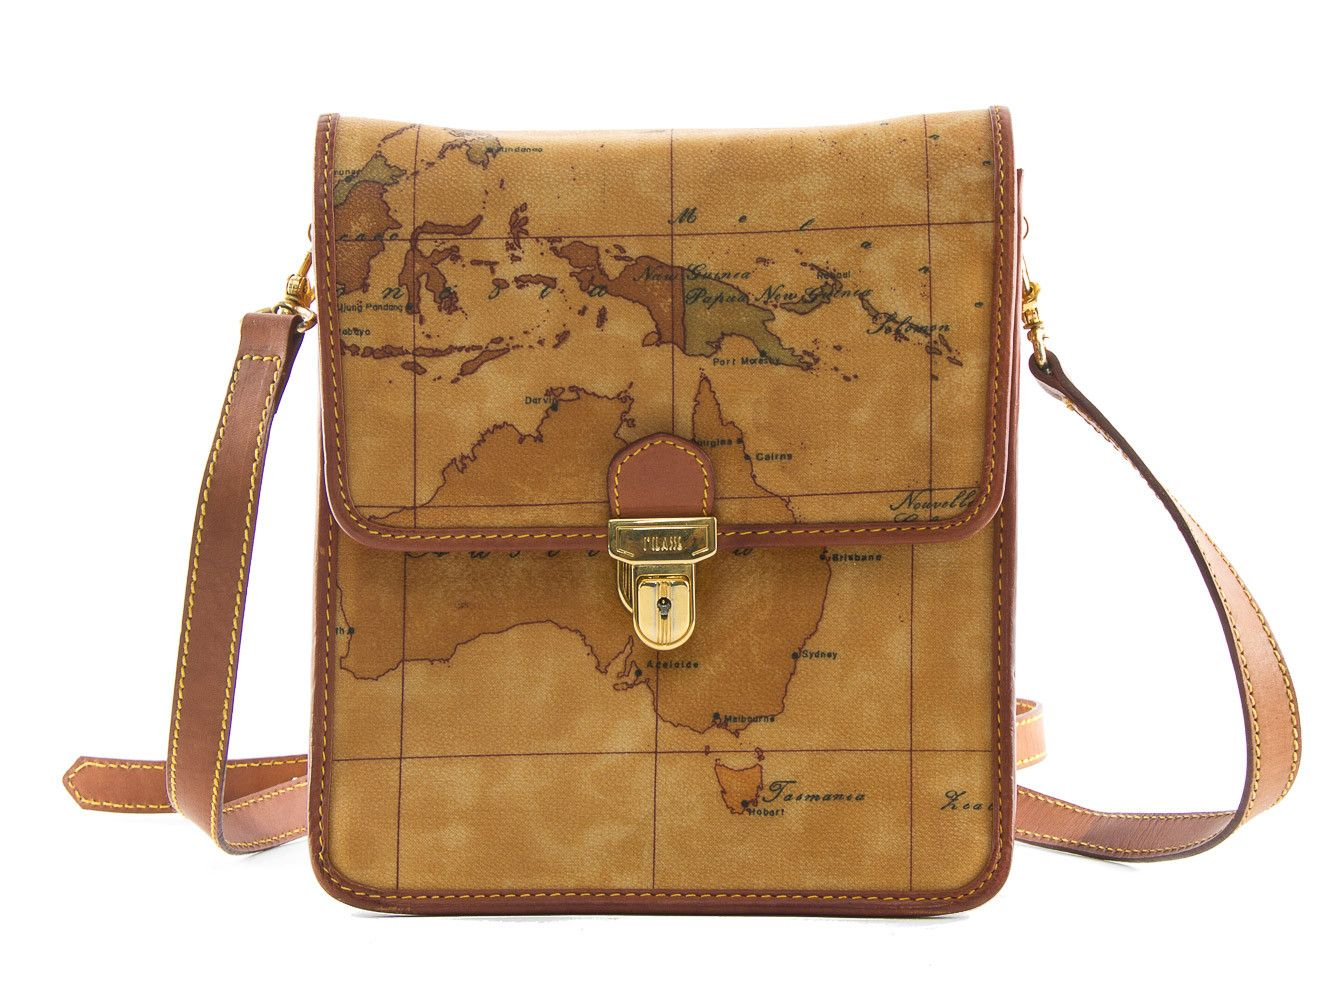 Authentic Alviero Martini Classe world map brown shoulder bag - Connect Japan Luxury - 1